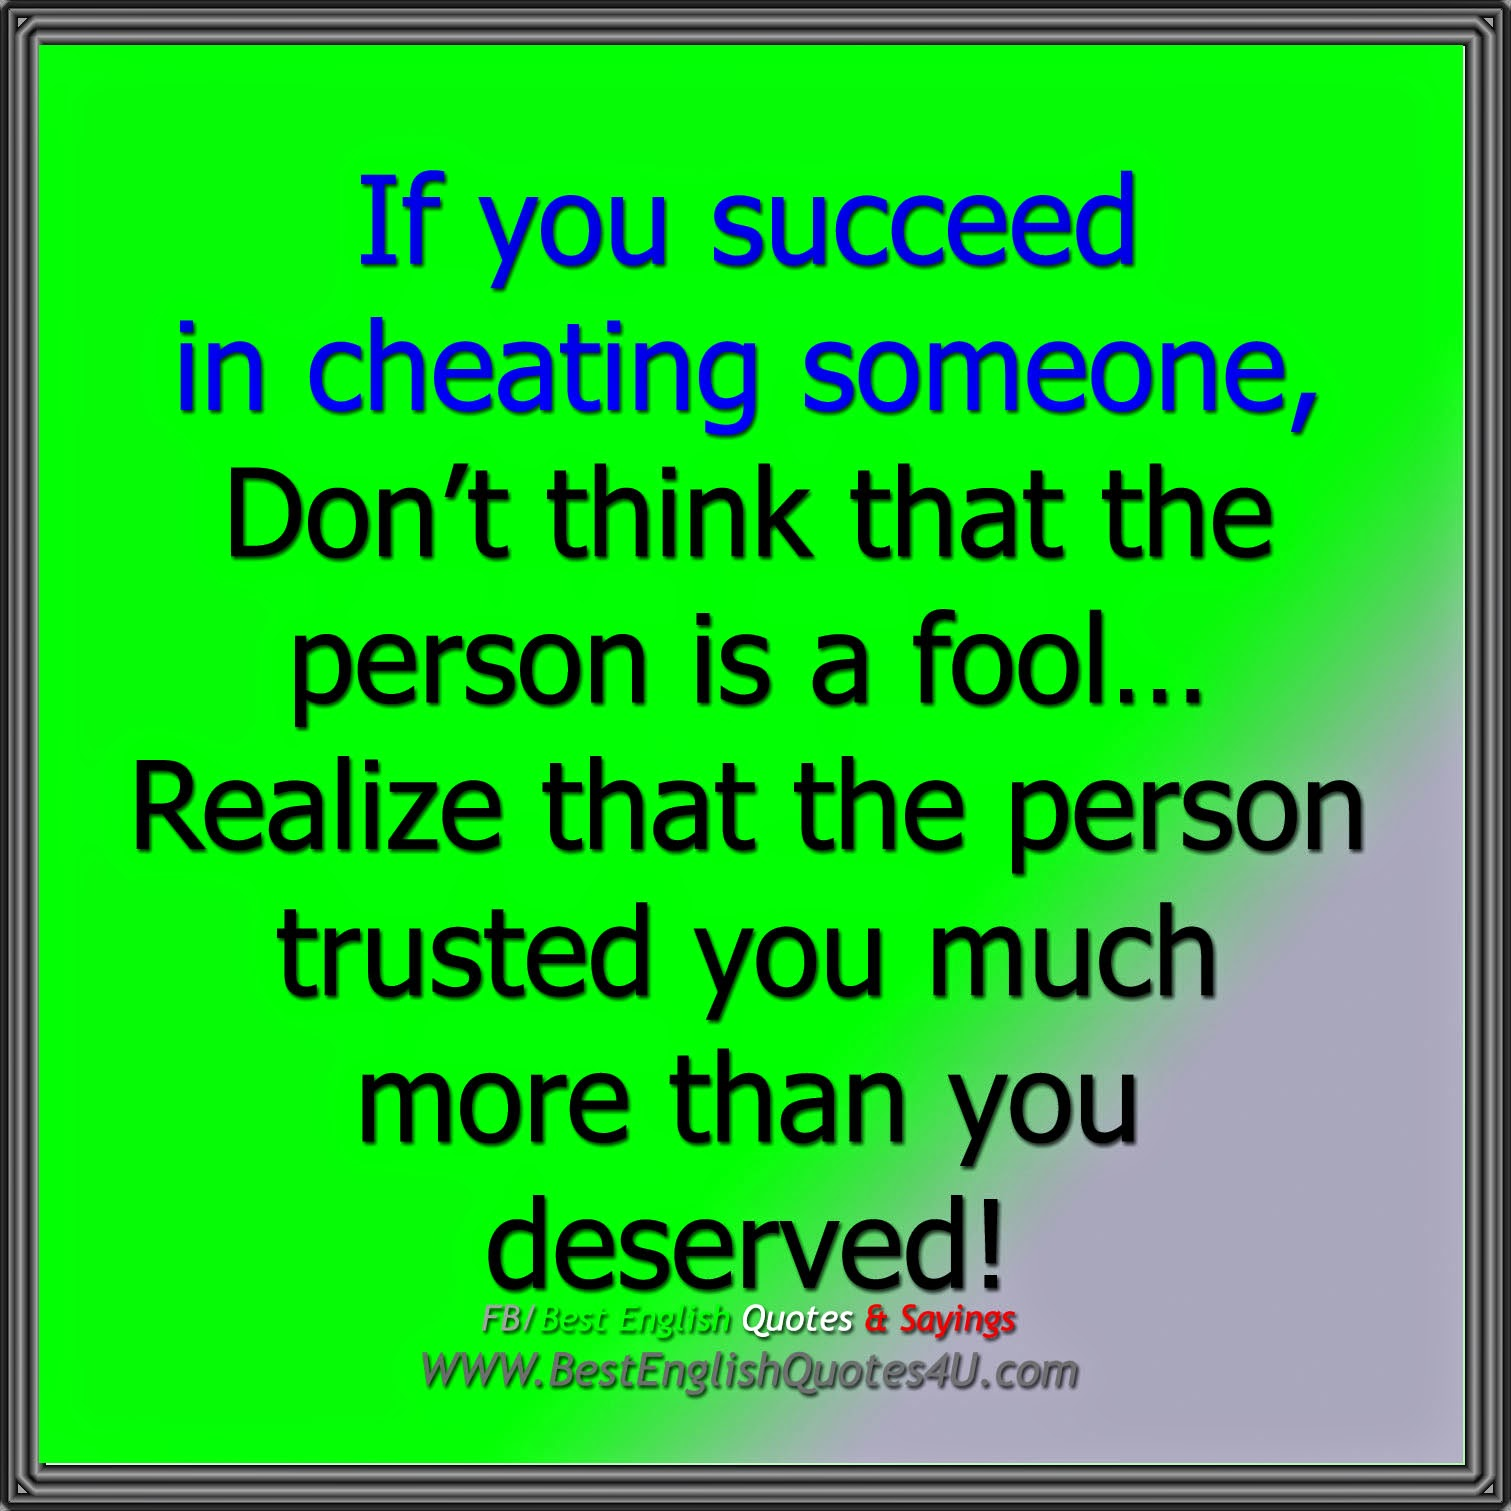 Cheating On Someone You Love Quotes: If You Succeed In Cheating Someone, Don't Think That